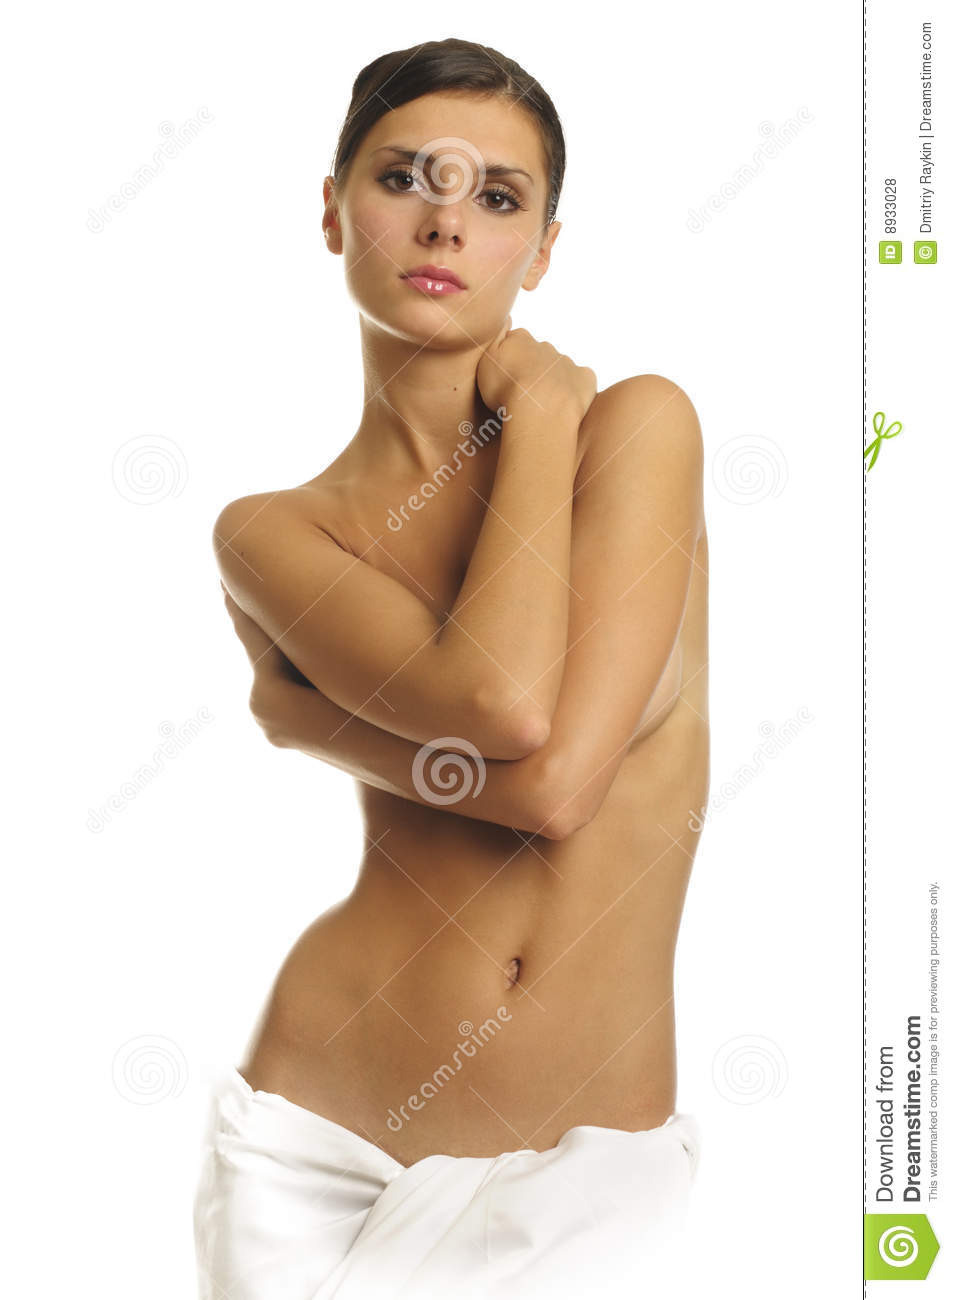 Naked Woman In Towel Royalty Free Stock Photos - Image: 8933028